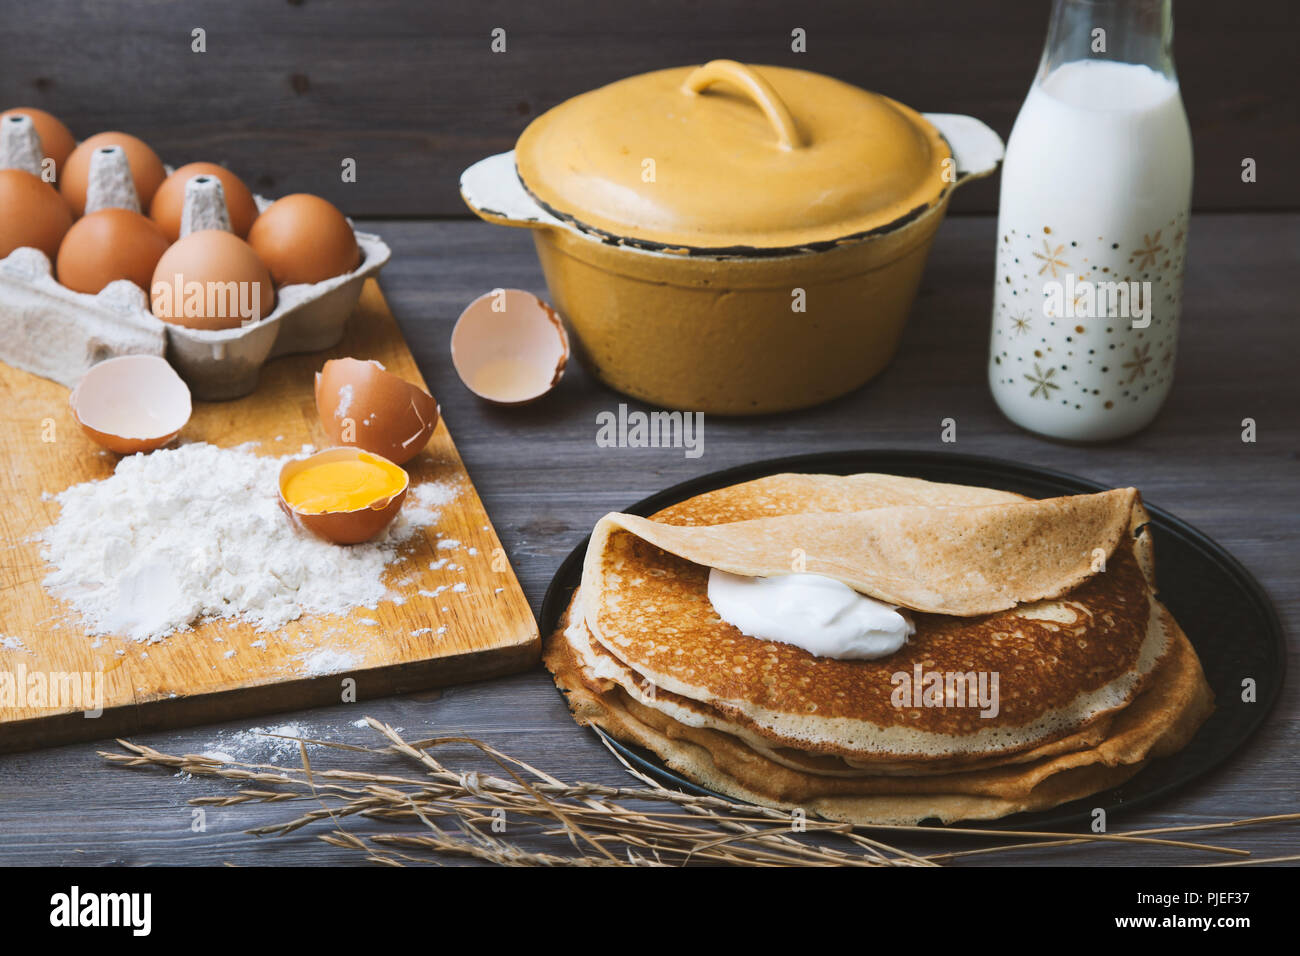 fresh, hot pancakes in a frying pan, eggs, milk, flour on a wooden table. - Stock Image